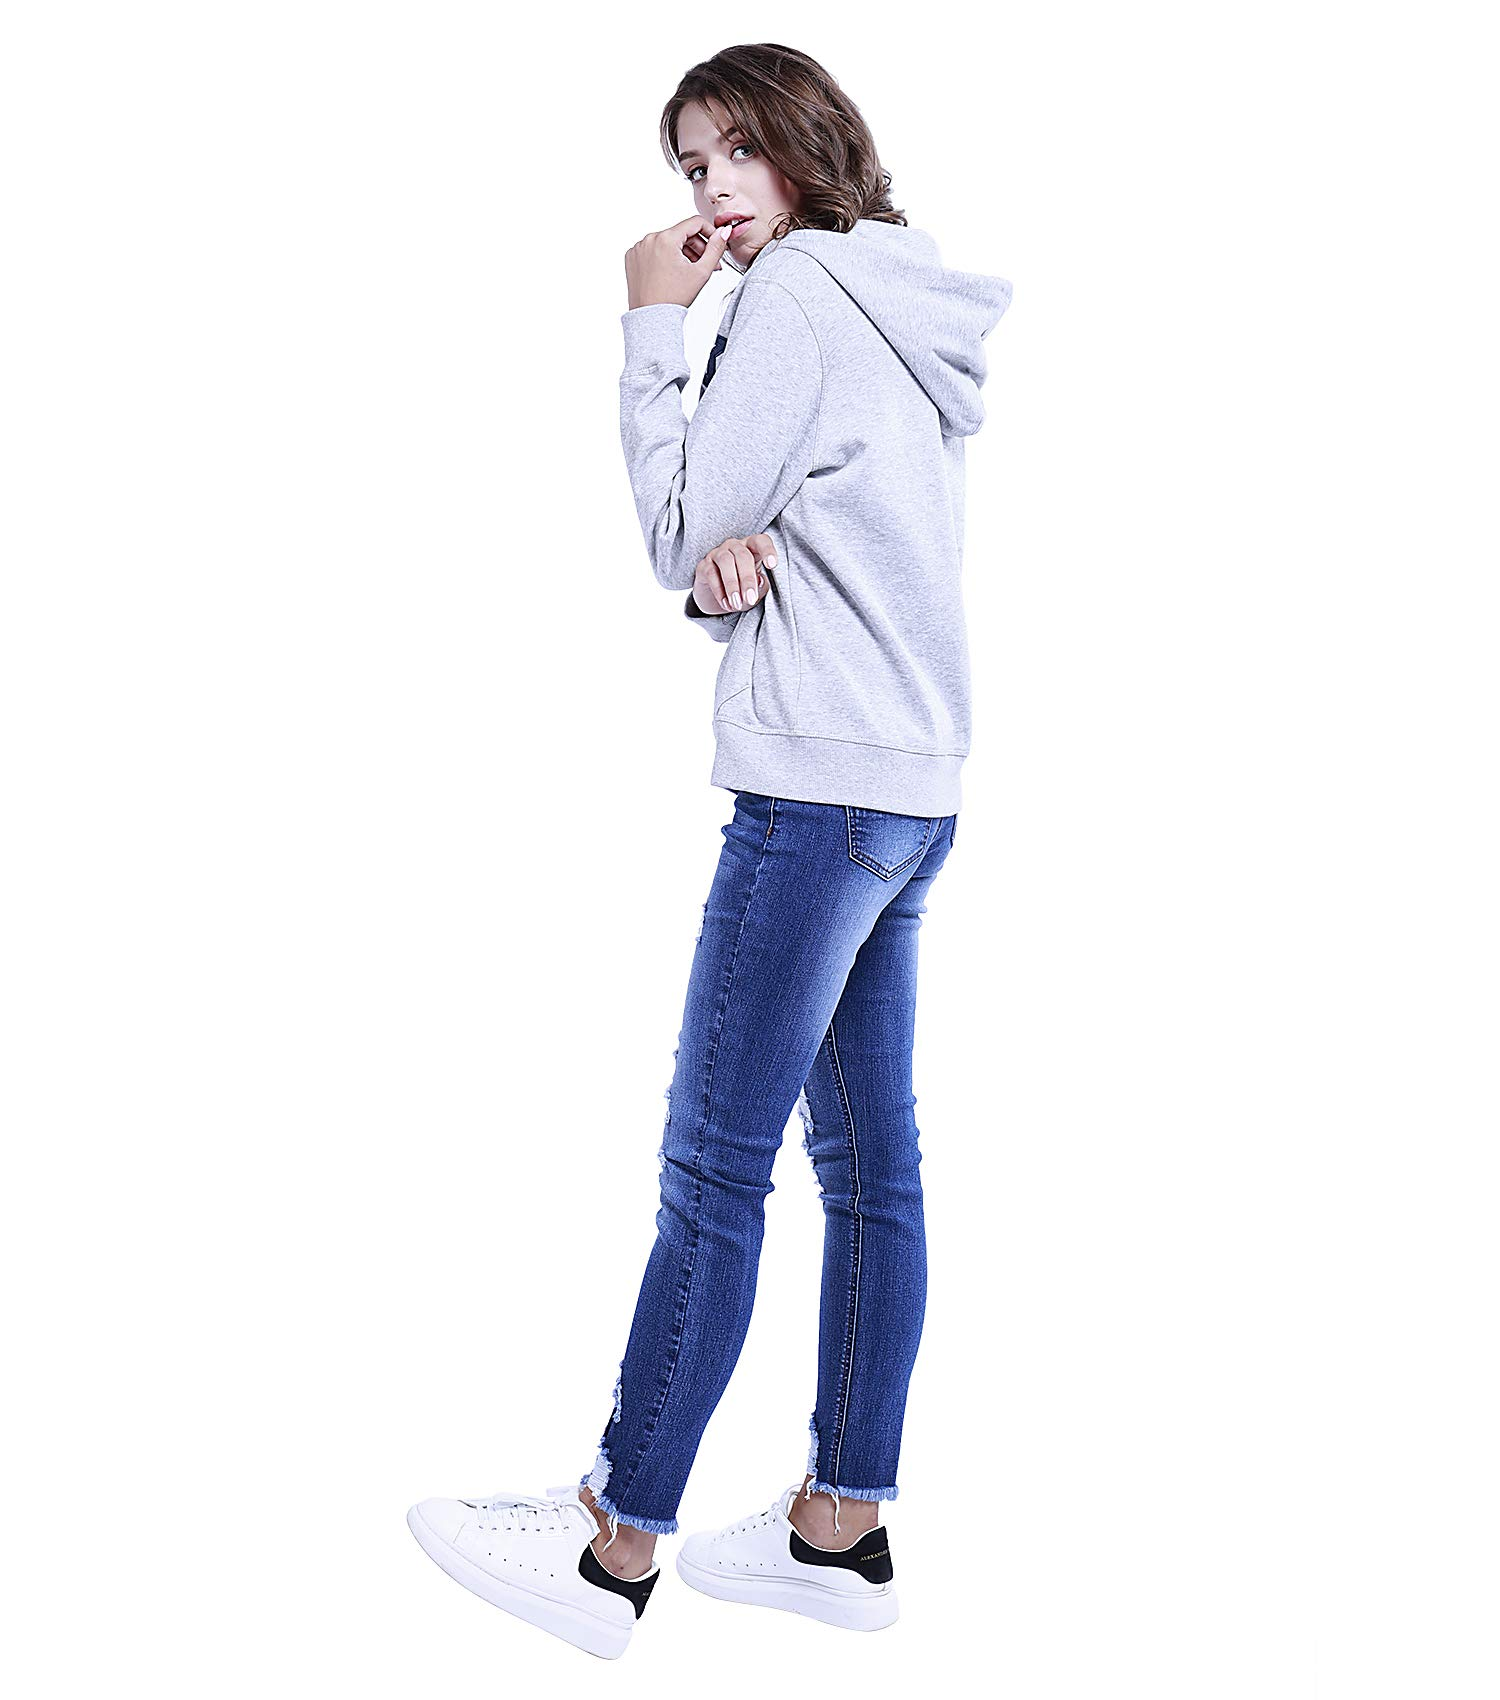 TWO BLOCKS OFF Womens Pull Over Hoodie Long Sleeve with Pockets Casual Pullover Sweatshirt Tops Light Grey Size S by TWO BLOCKS OFF (Image #3)